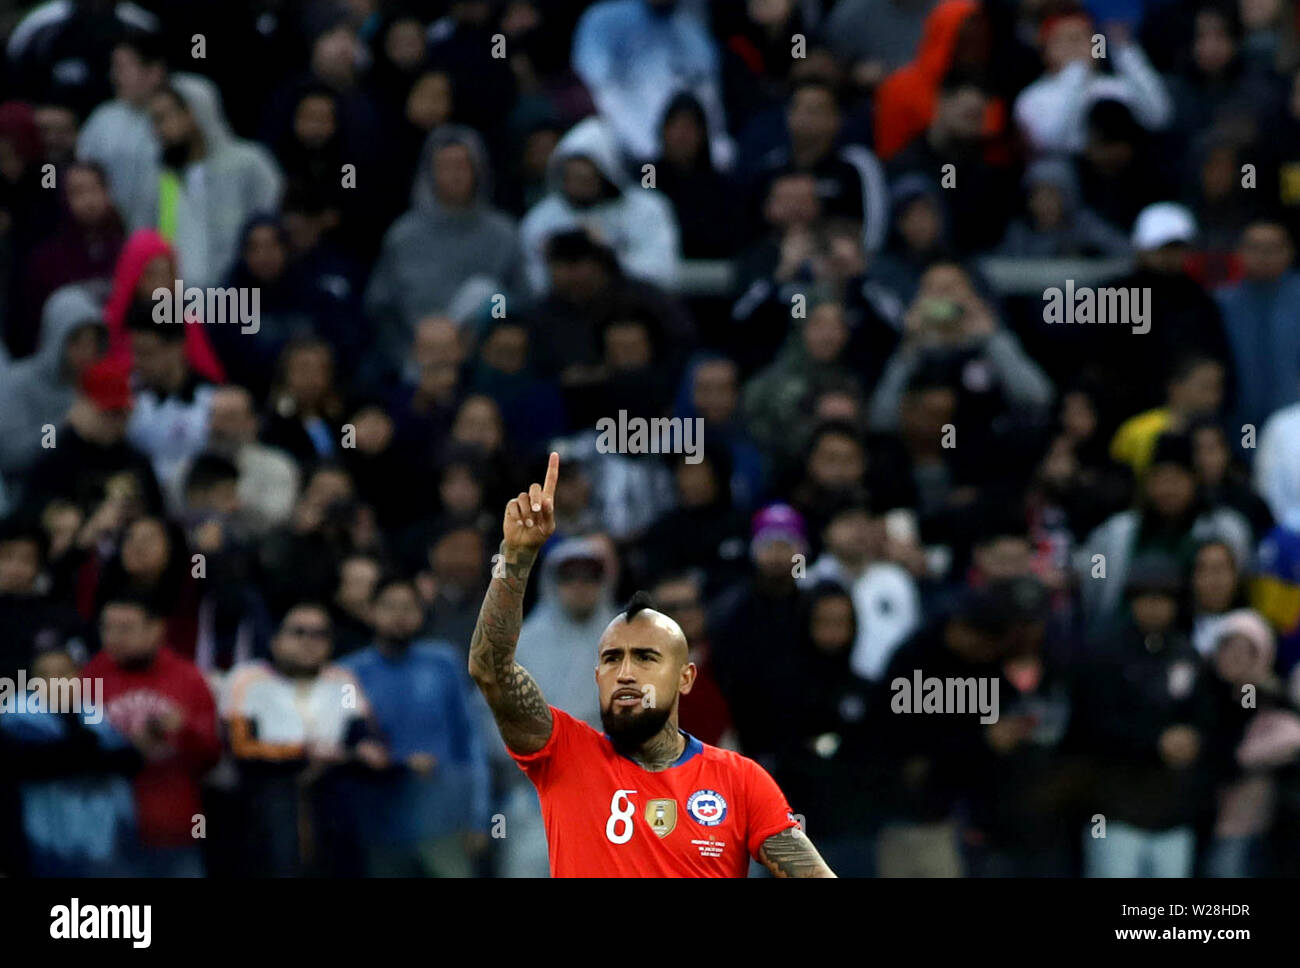 Sao Paulo, Brazil. 6th July, 2019. Chile's Arturo Vidal celebrates after scoring during the 3rd place match of Copa America 2019 between Argentina and Chile in Sao Paulo, Brazil, July 6, 2019. Credit: Rahel Patrasso/Xinhua/Alamy Live News - Stock Image